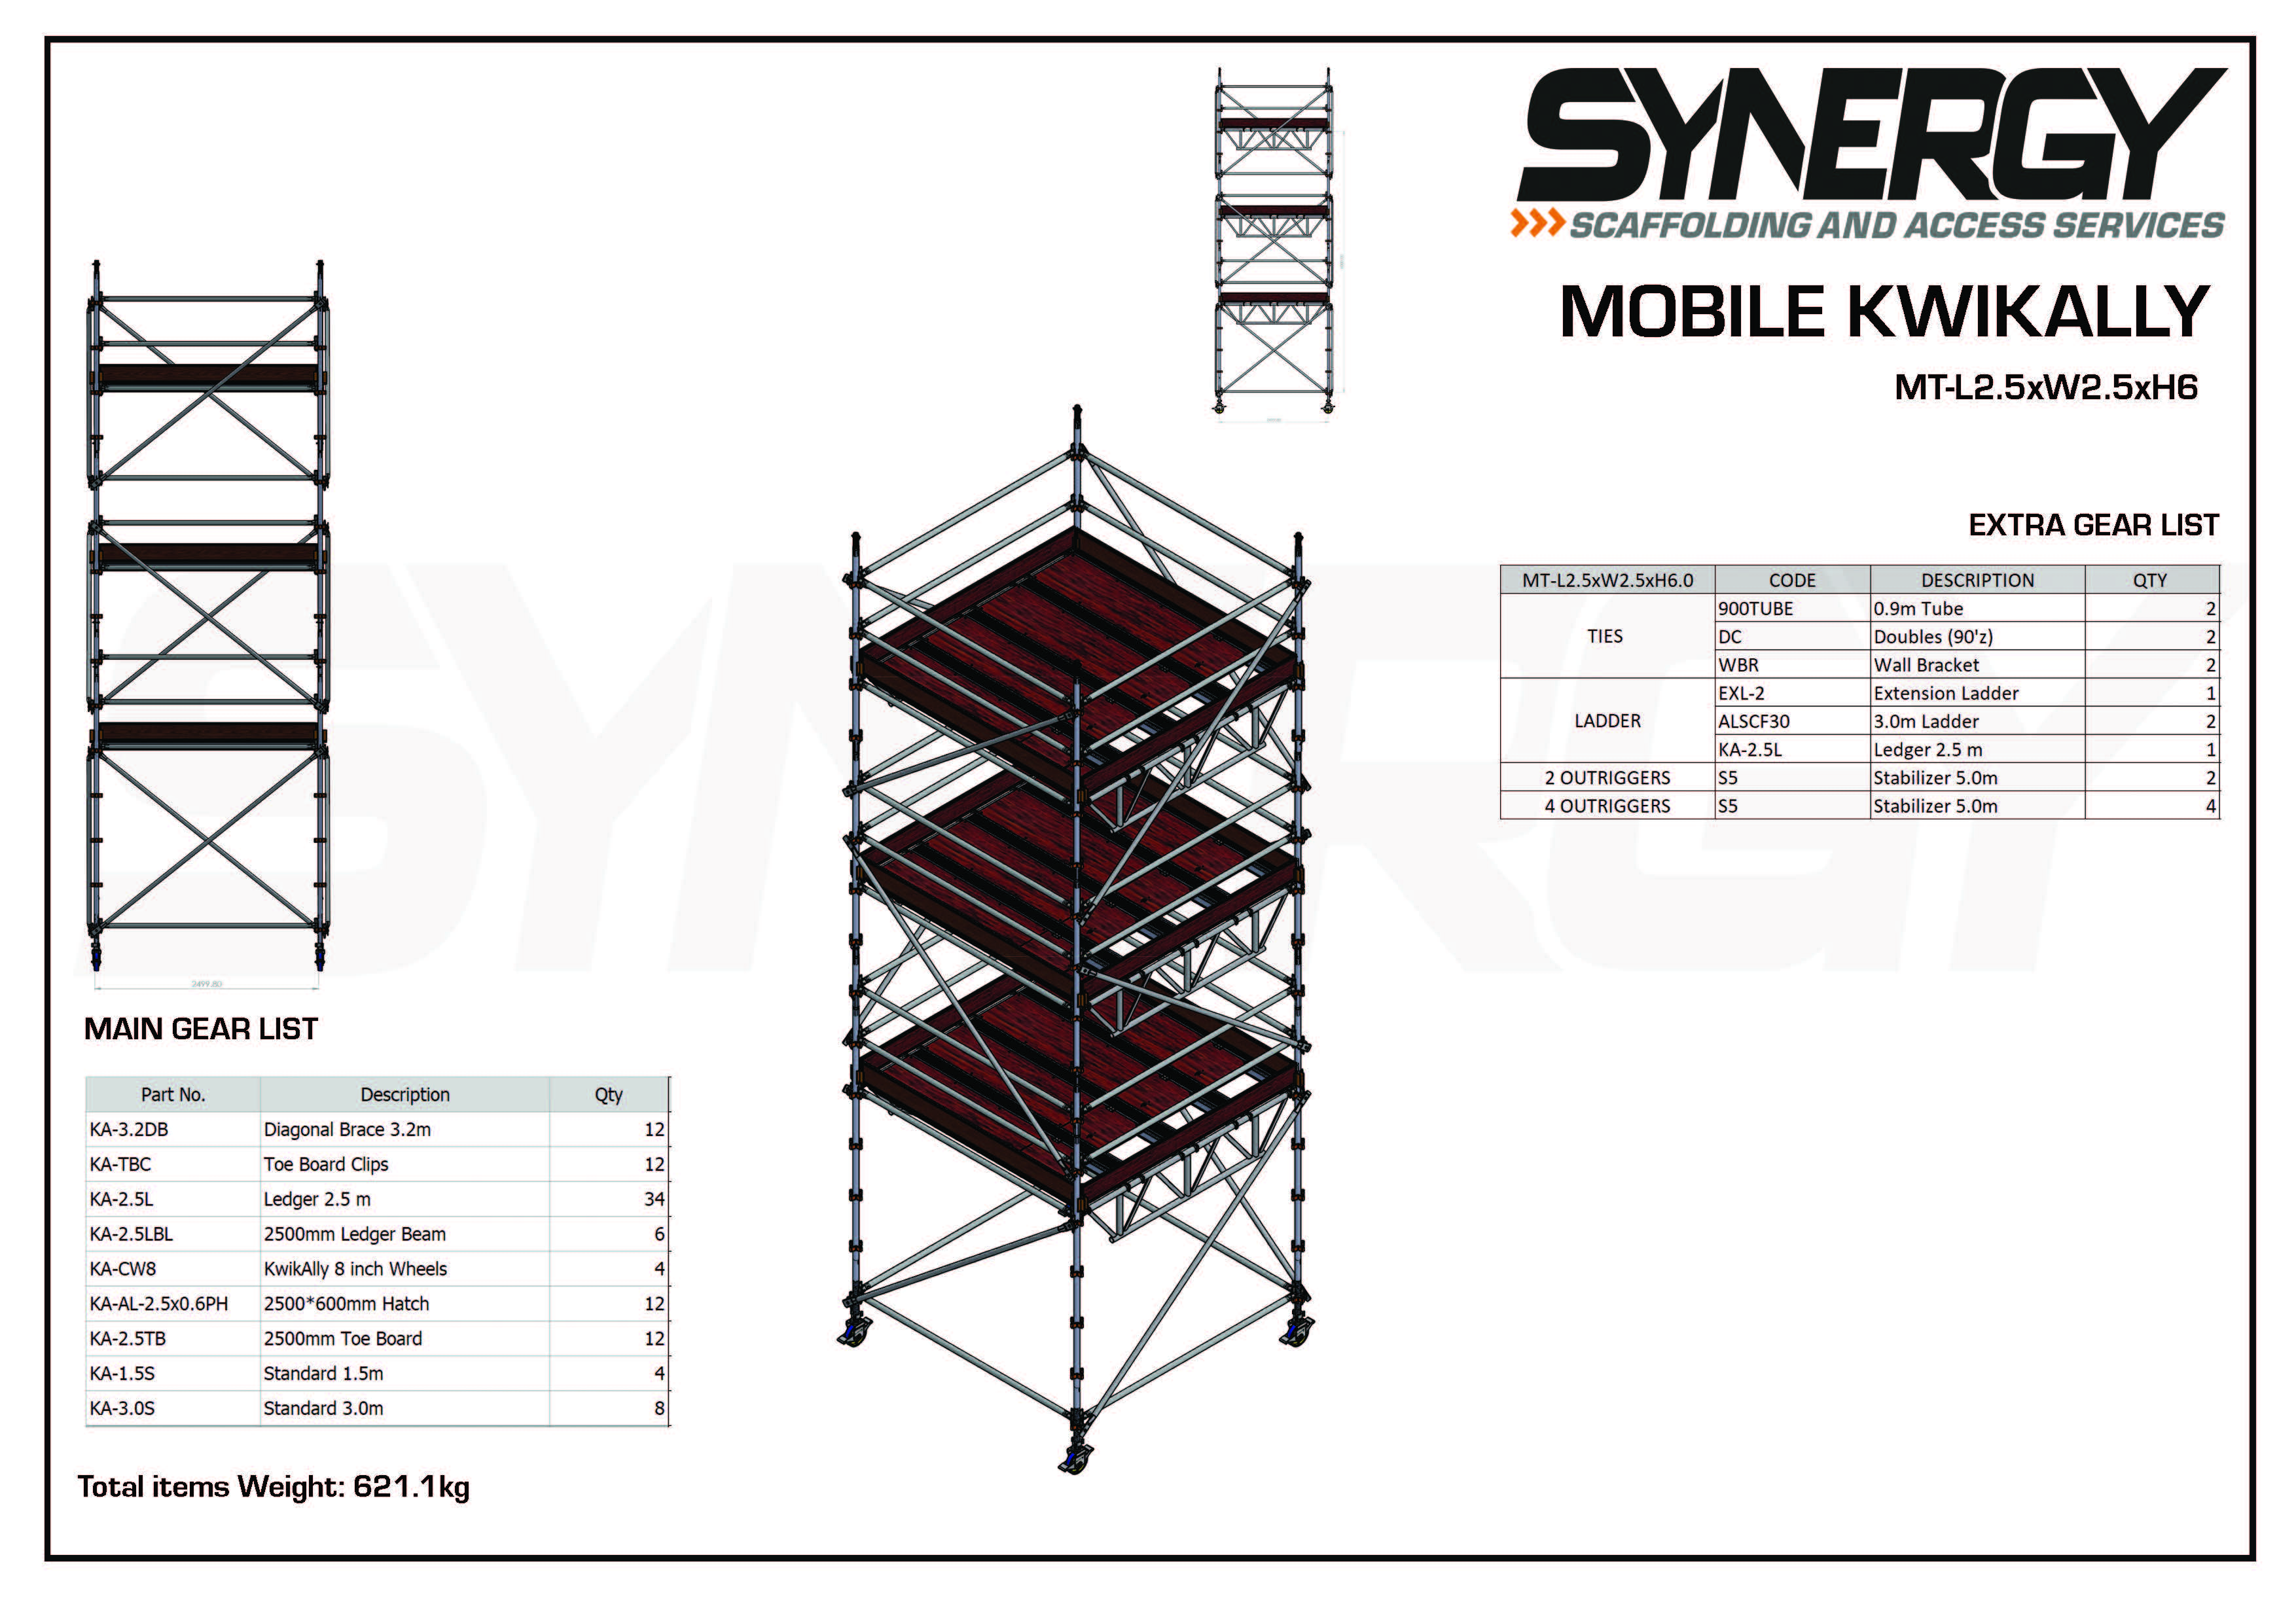 Kwikally Mobile 2.5m x 2.5m x 6m(Height)